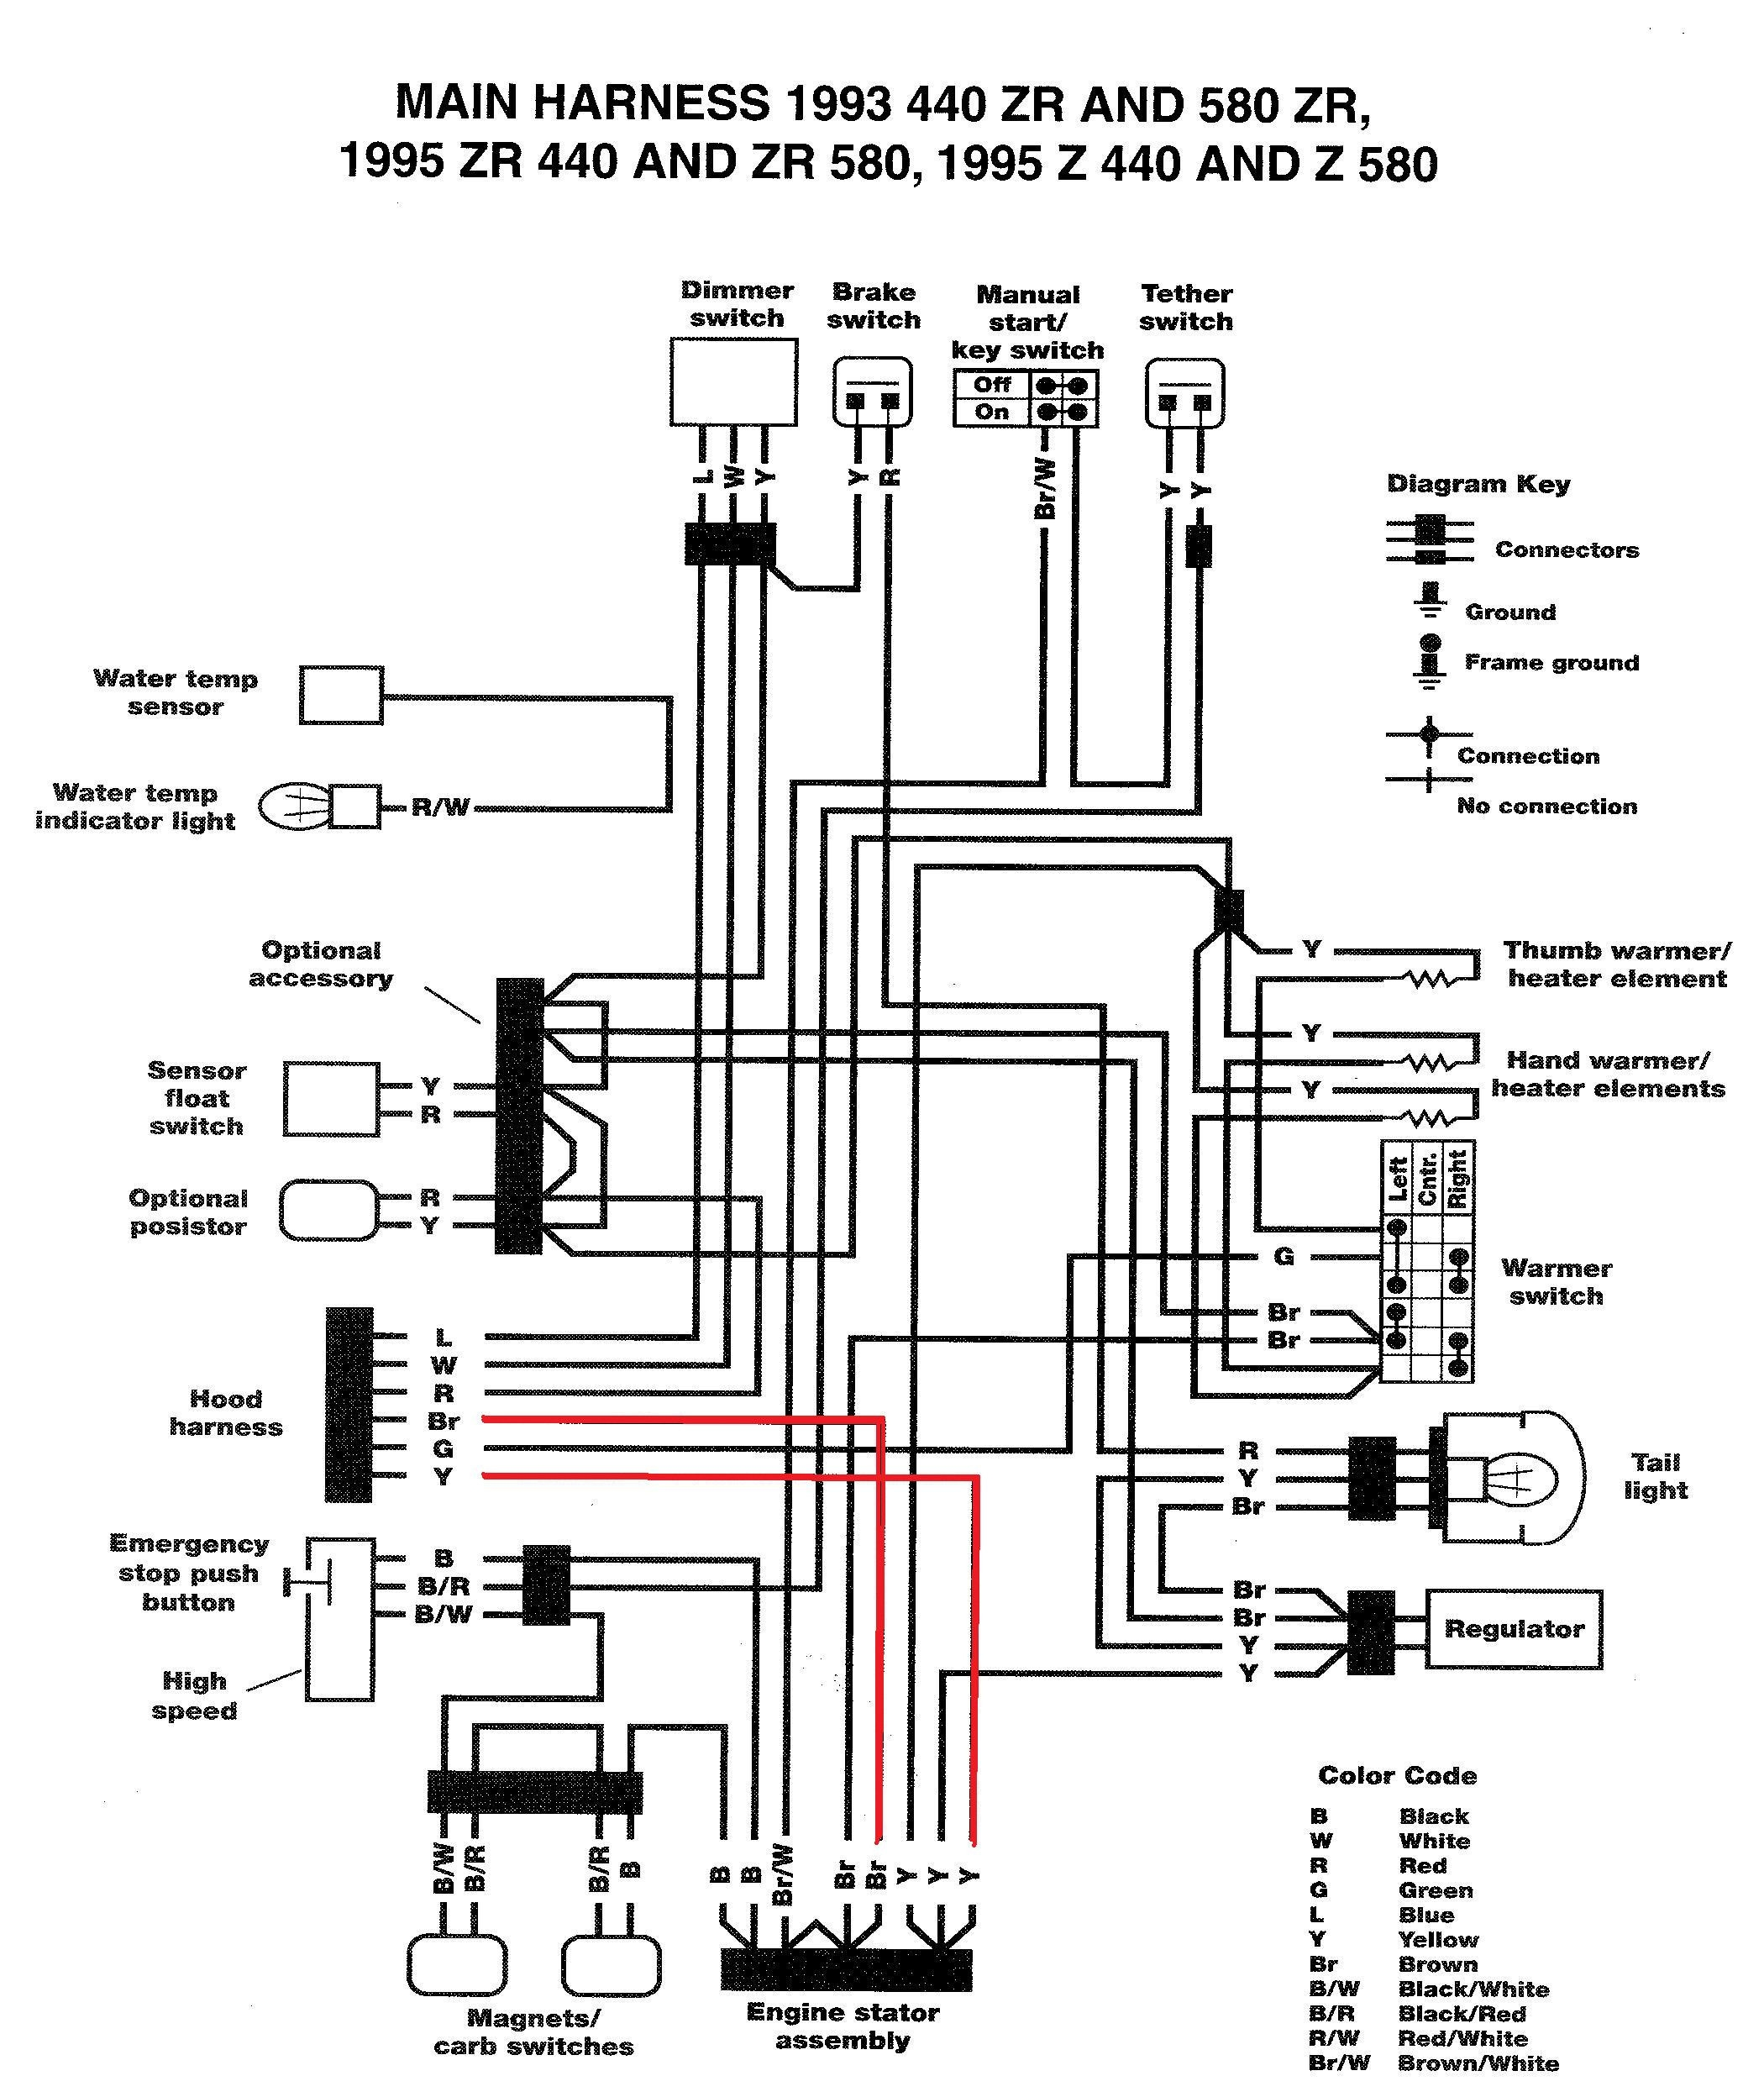 yamaha grizzly 125 wiring diagram yamaha grizzly 125 wiring schematic